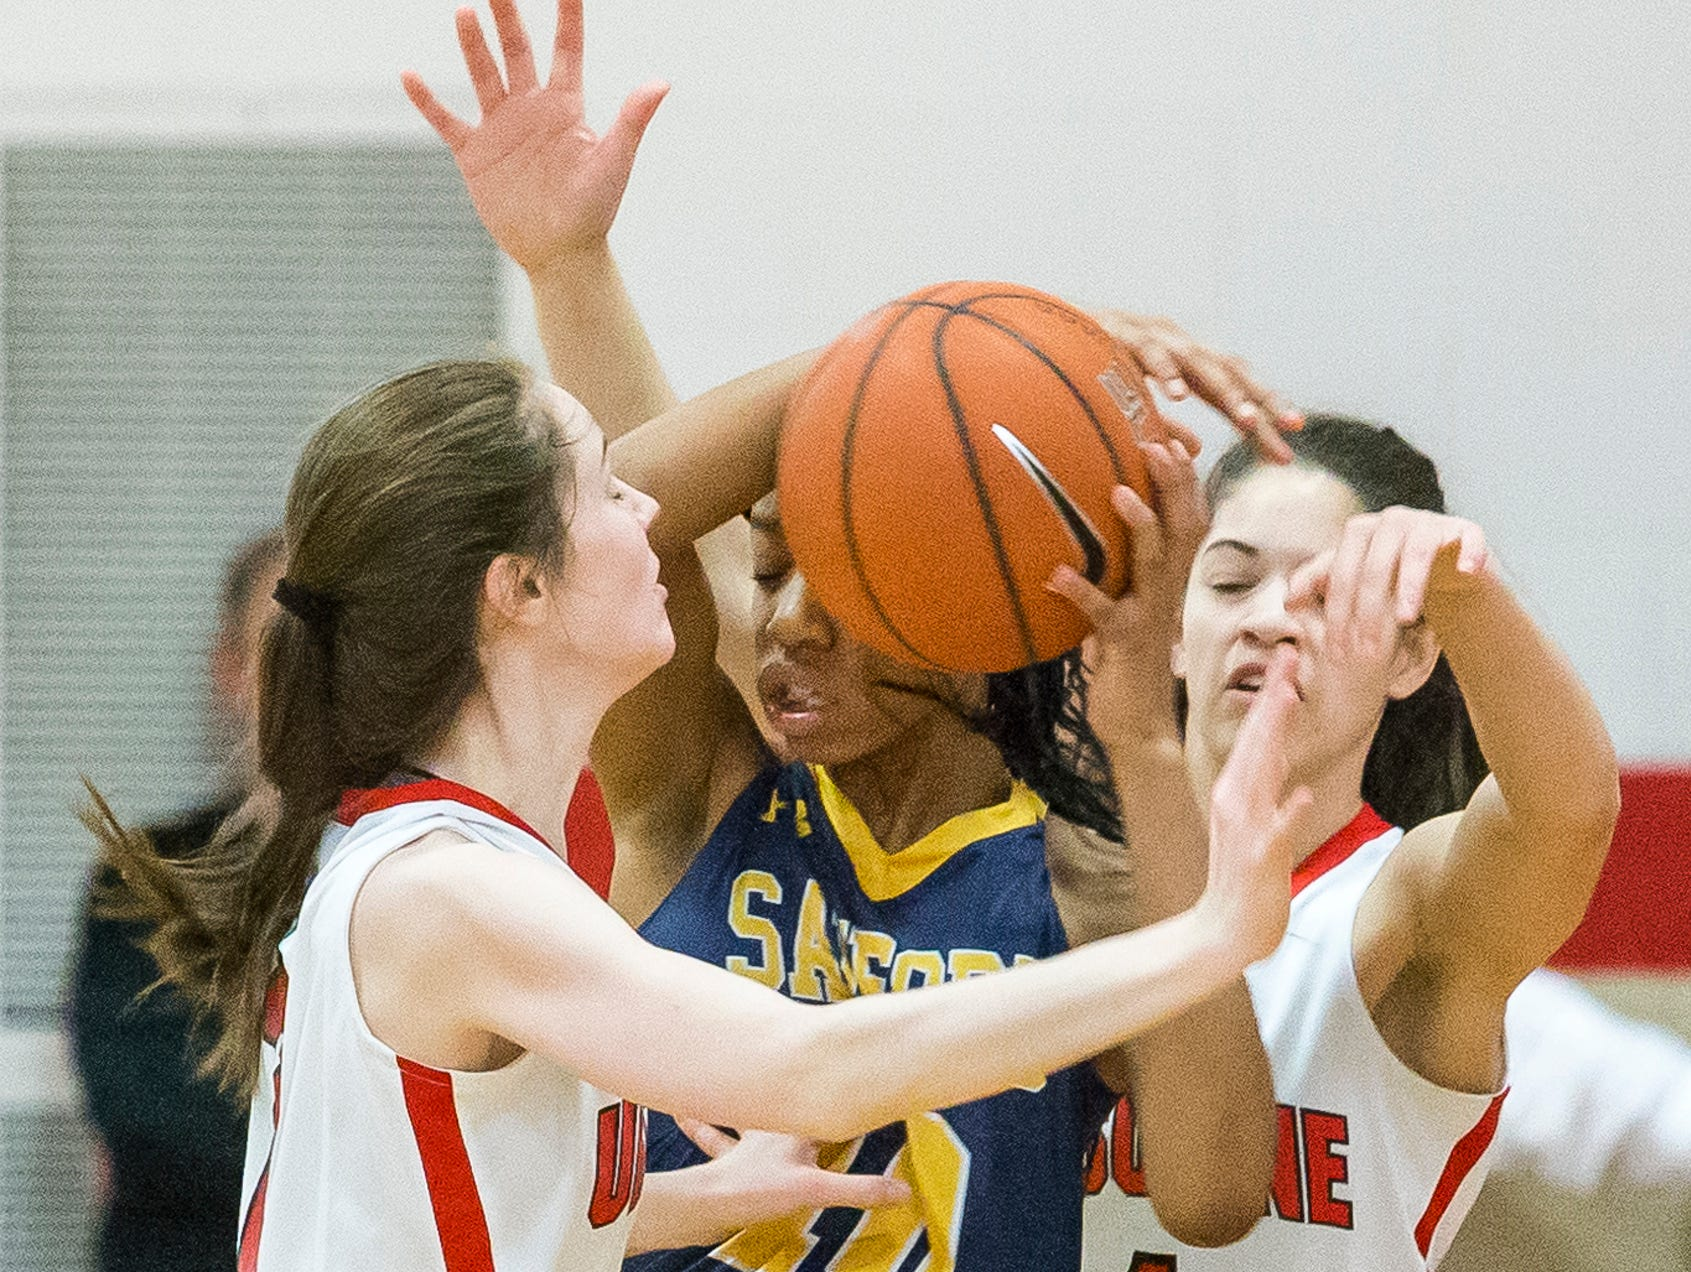 Ursuline's Maggie Connolly (left) and Alisha Lewis (right) trap Sanford's Kanisha Tucker in the second half of Ursuline's 50-40 win over Sanford at Ursuline Academy on Thursday night.